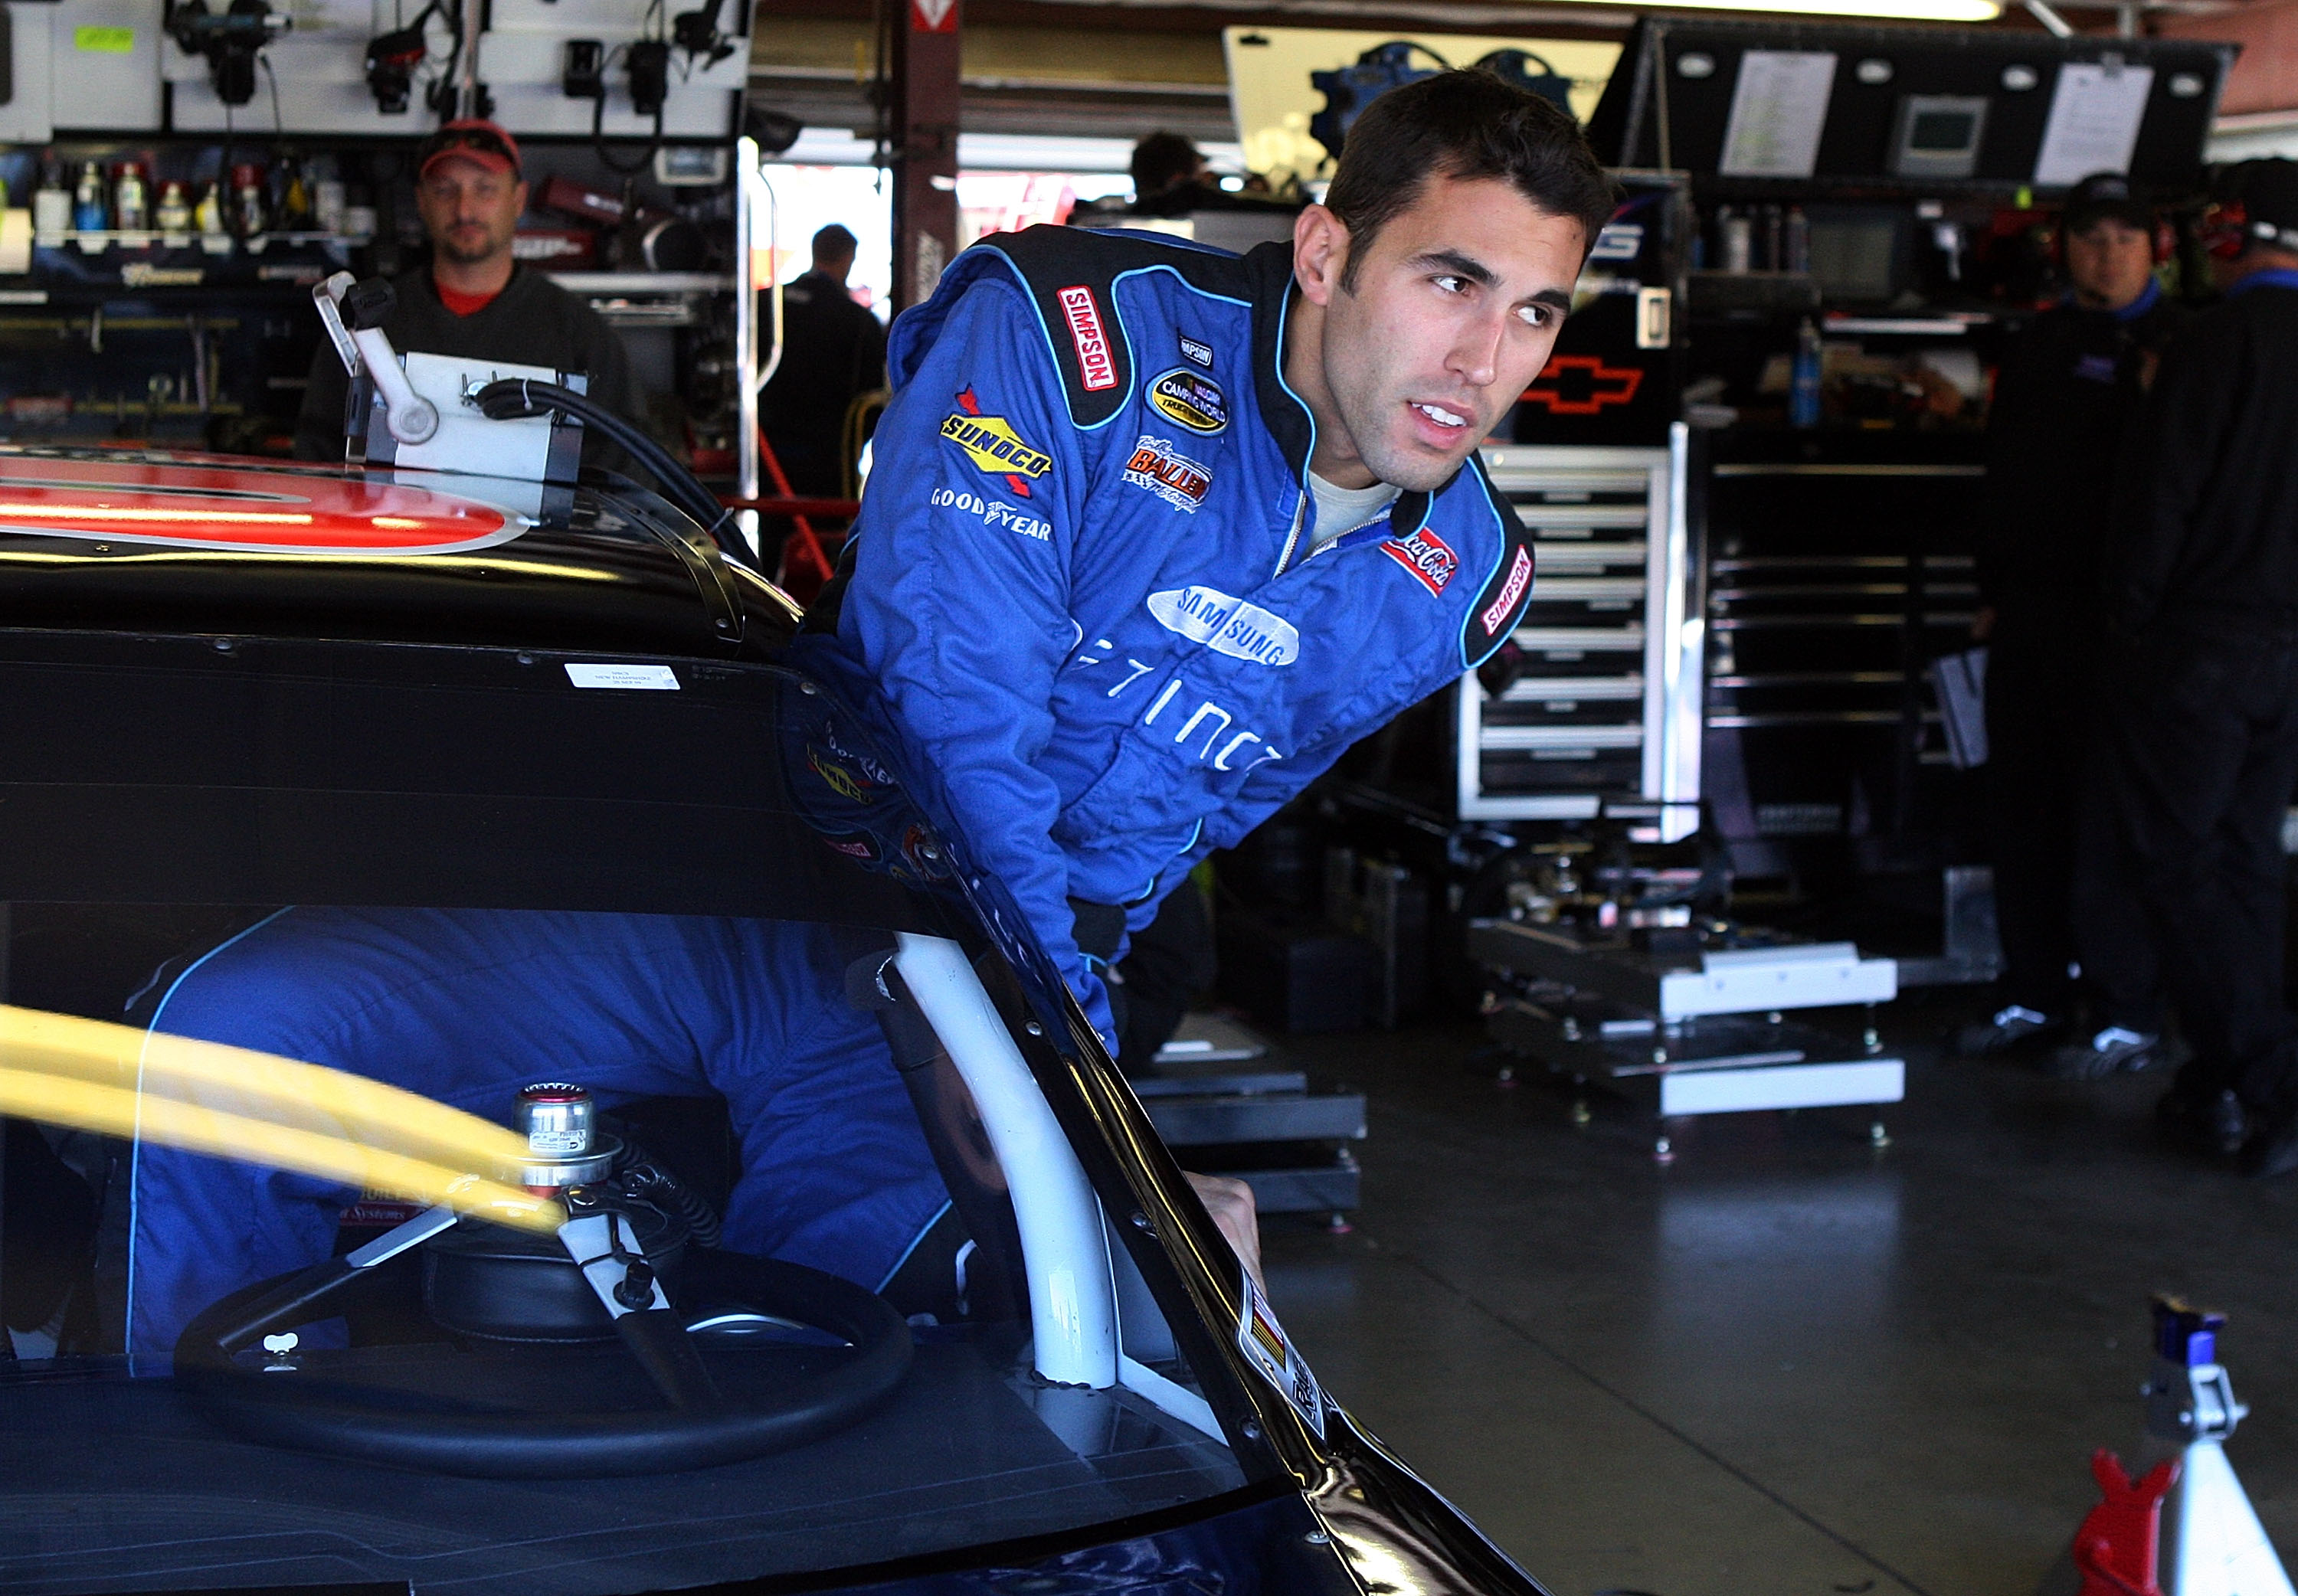 LOUDON, NH - SEPTEMBER 19:  Aric Amirola, driver of the #09 Miccosukee Indian Gaming & Resort Chevrolet, climbs into his car during practice for the NASCAR Sprint Cup Series Sylvania 300 at the New Hampshire Motor Speedway on September 19, 2009 in Loudon,